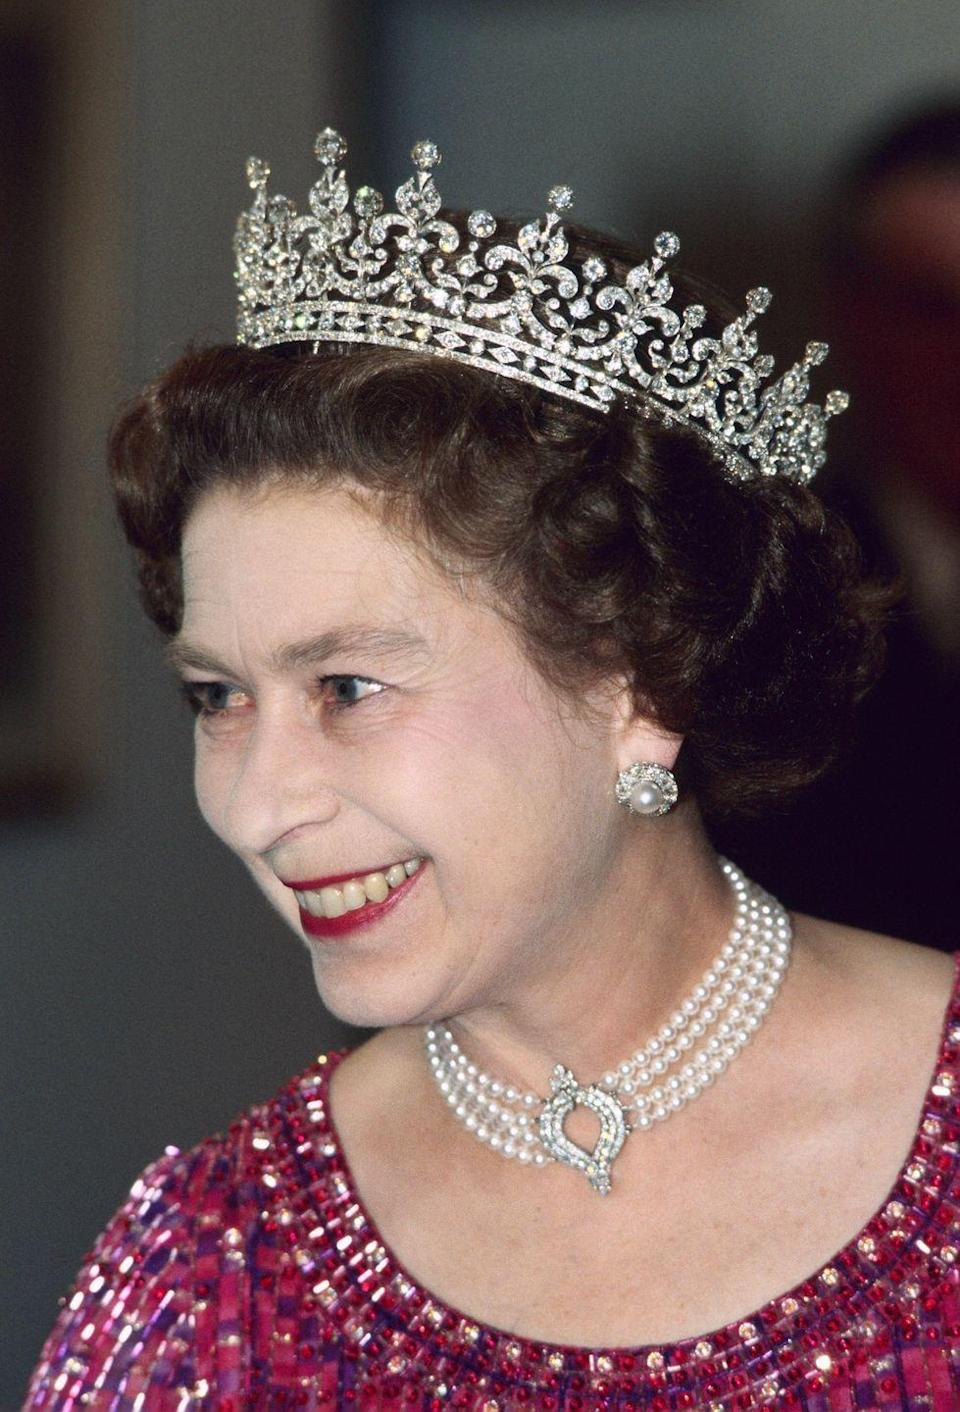 """<p>This four-strand pearl choker with diamond pendant was commissioned for the Queen by the Japanese government in the early 80's; she's seen wearing it here on November 16, 1983. It's been <a href=""""http://www.townandcountrymag.com/style/jewelry-and-watches/a13819159/kate-middleton-queen-pearl-choker/"""" rel=""""nofollow noopener"""" target=""""_blank"""" data-ylk=""""slk:seen on the Duchess of Cambridge"""" class=""""link rapid-noclick-resp"""">seen on the Duchess of Cambridge</a> as well.</p>"""